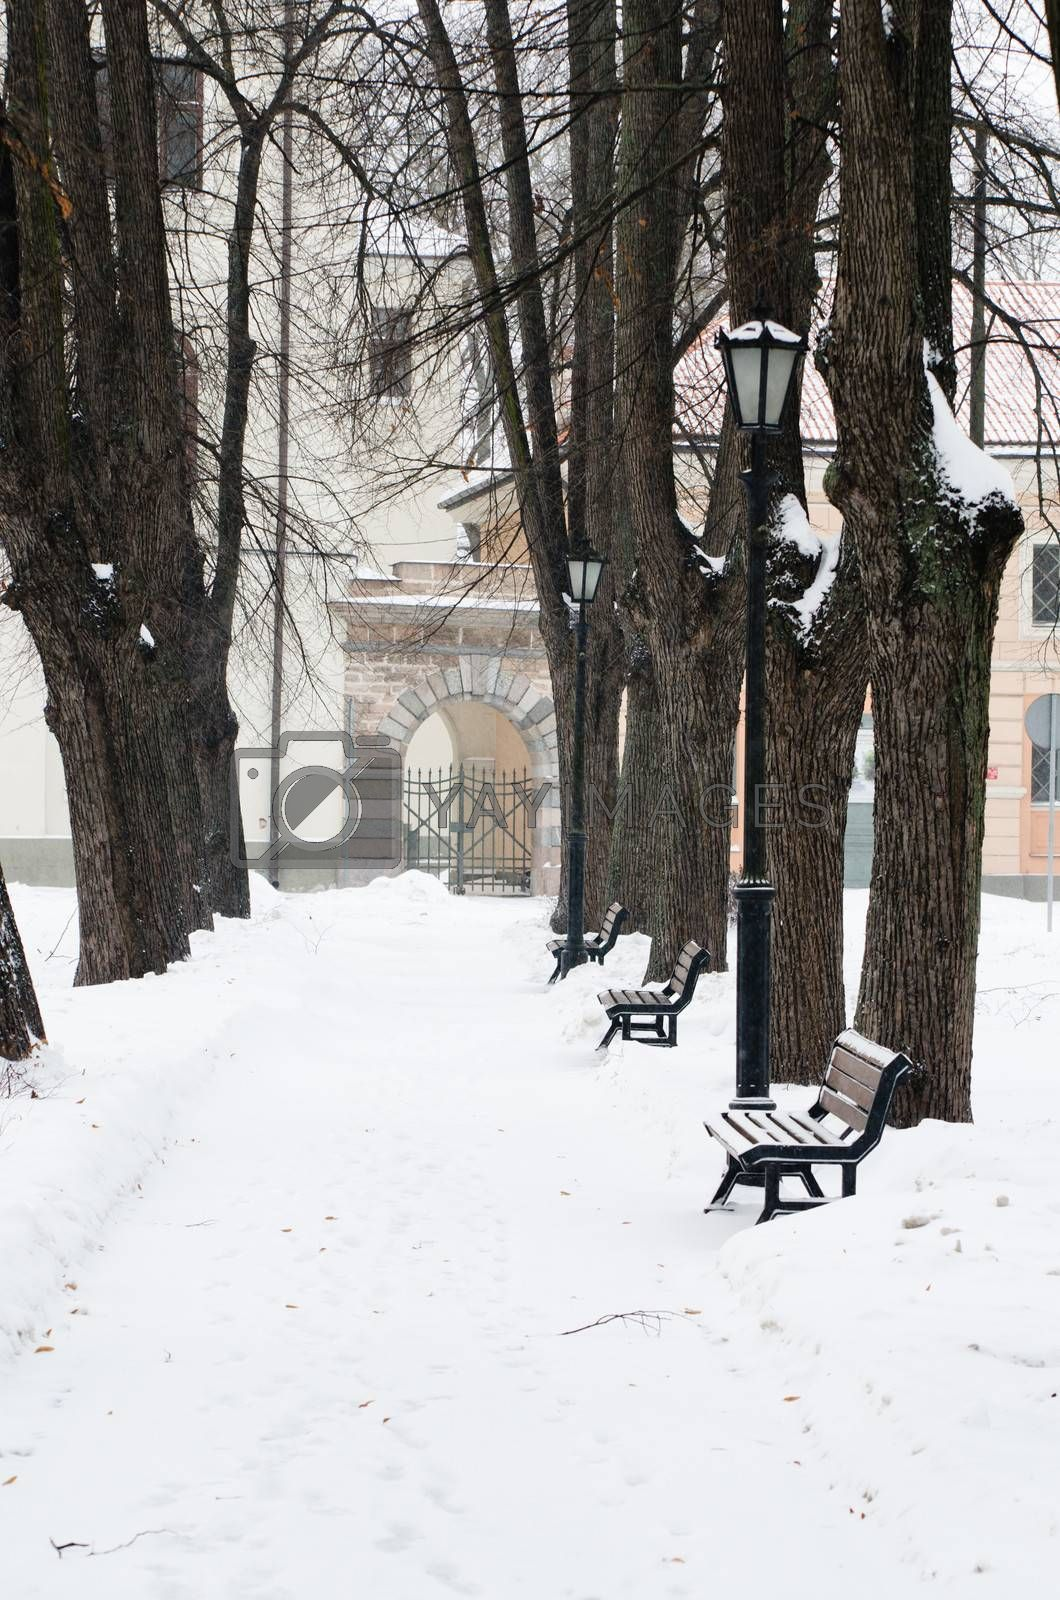 The park brought by a snow in the center of Riga